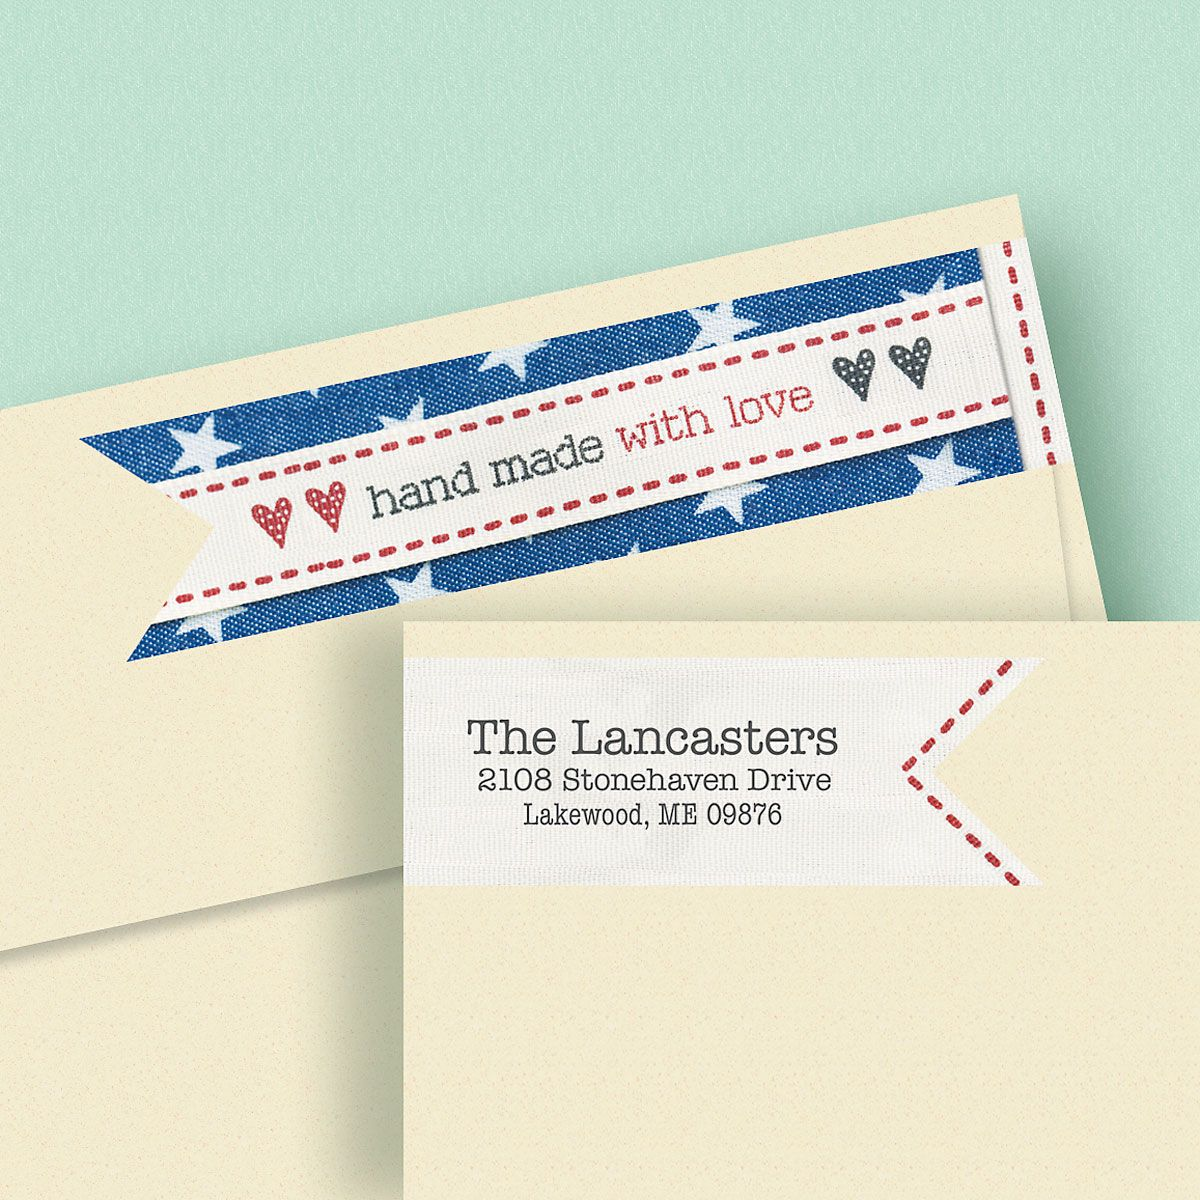 Hand Made with Love Wrap Around Address Labels